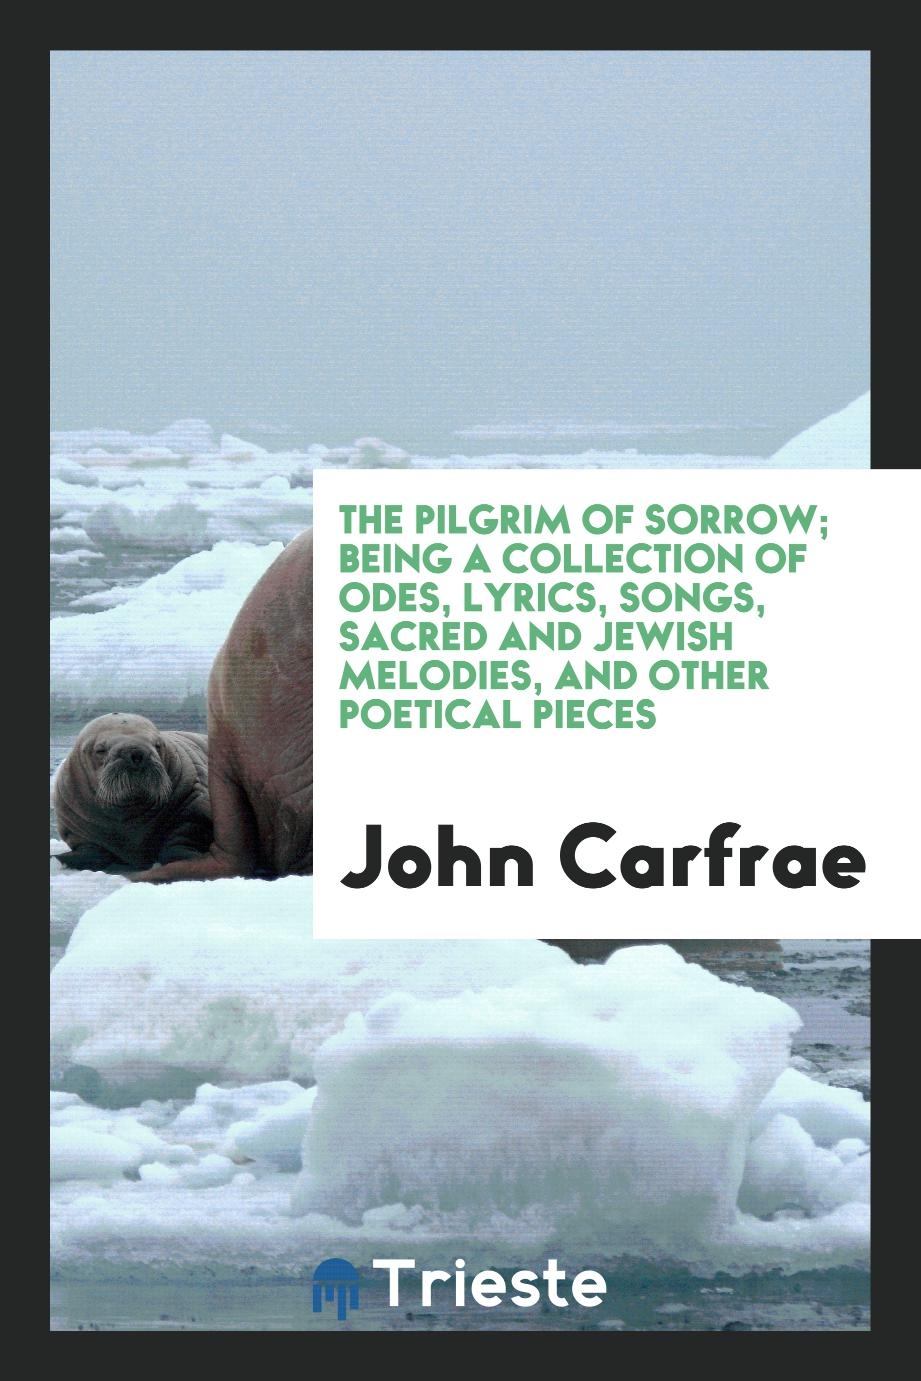 John Carfrae - The Pilgrim of Sorrow; Being a Collection of Odes, Lyrics, Songs, Sacred and Jewish Melodies, and Other Poetical Pieces